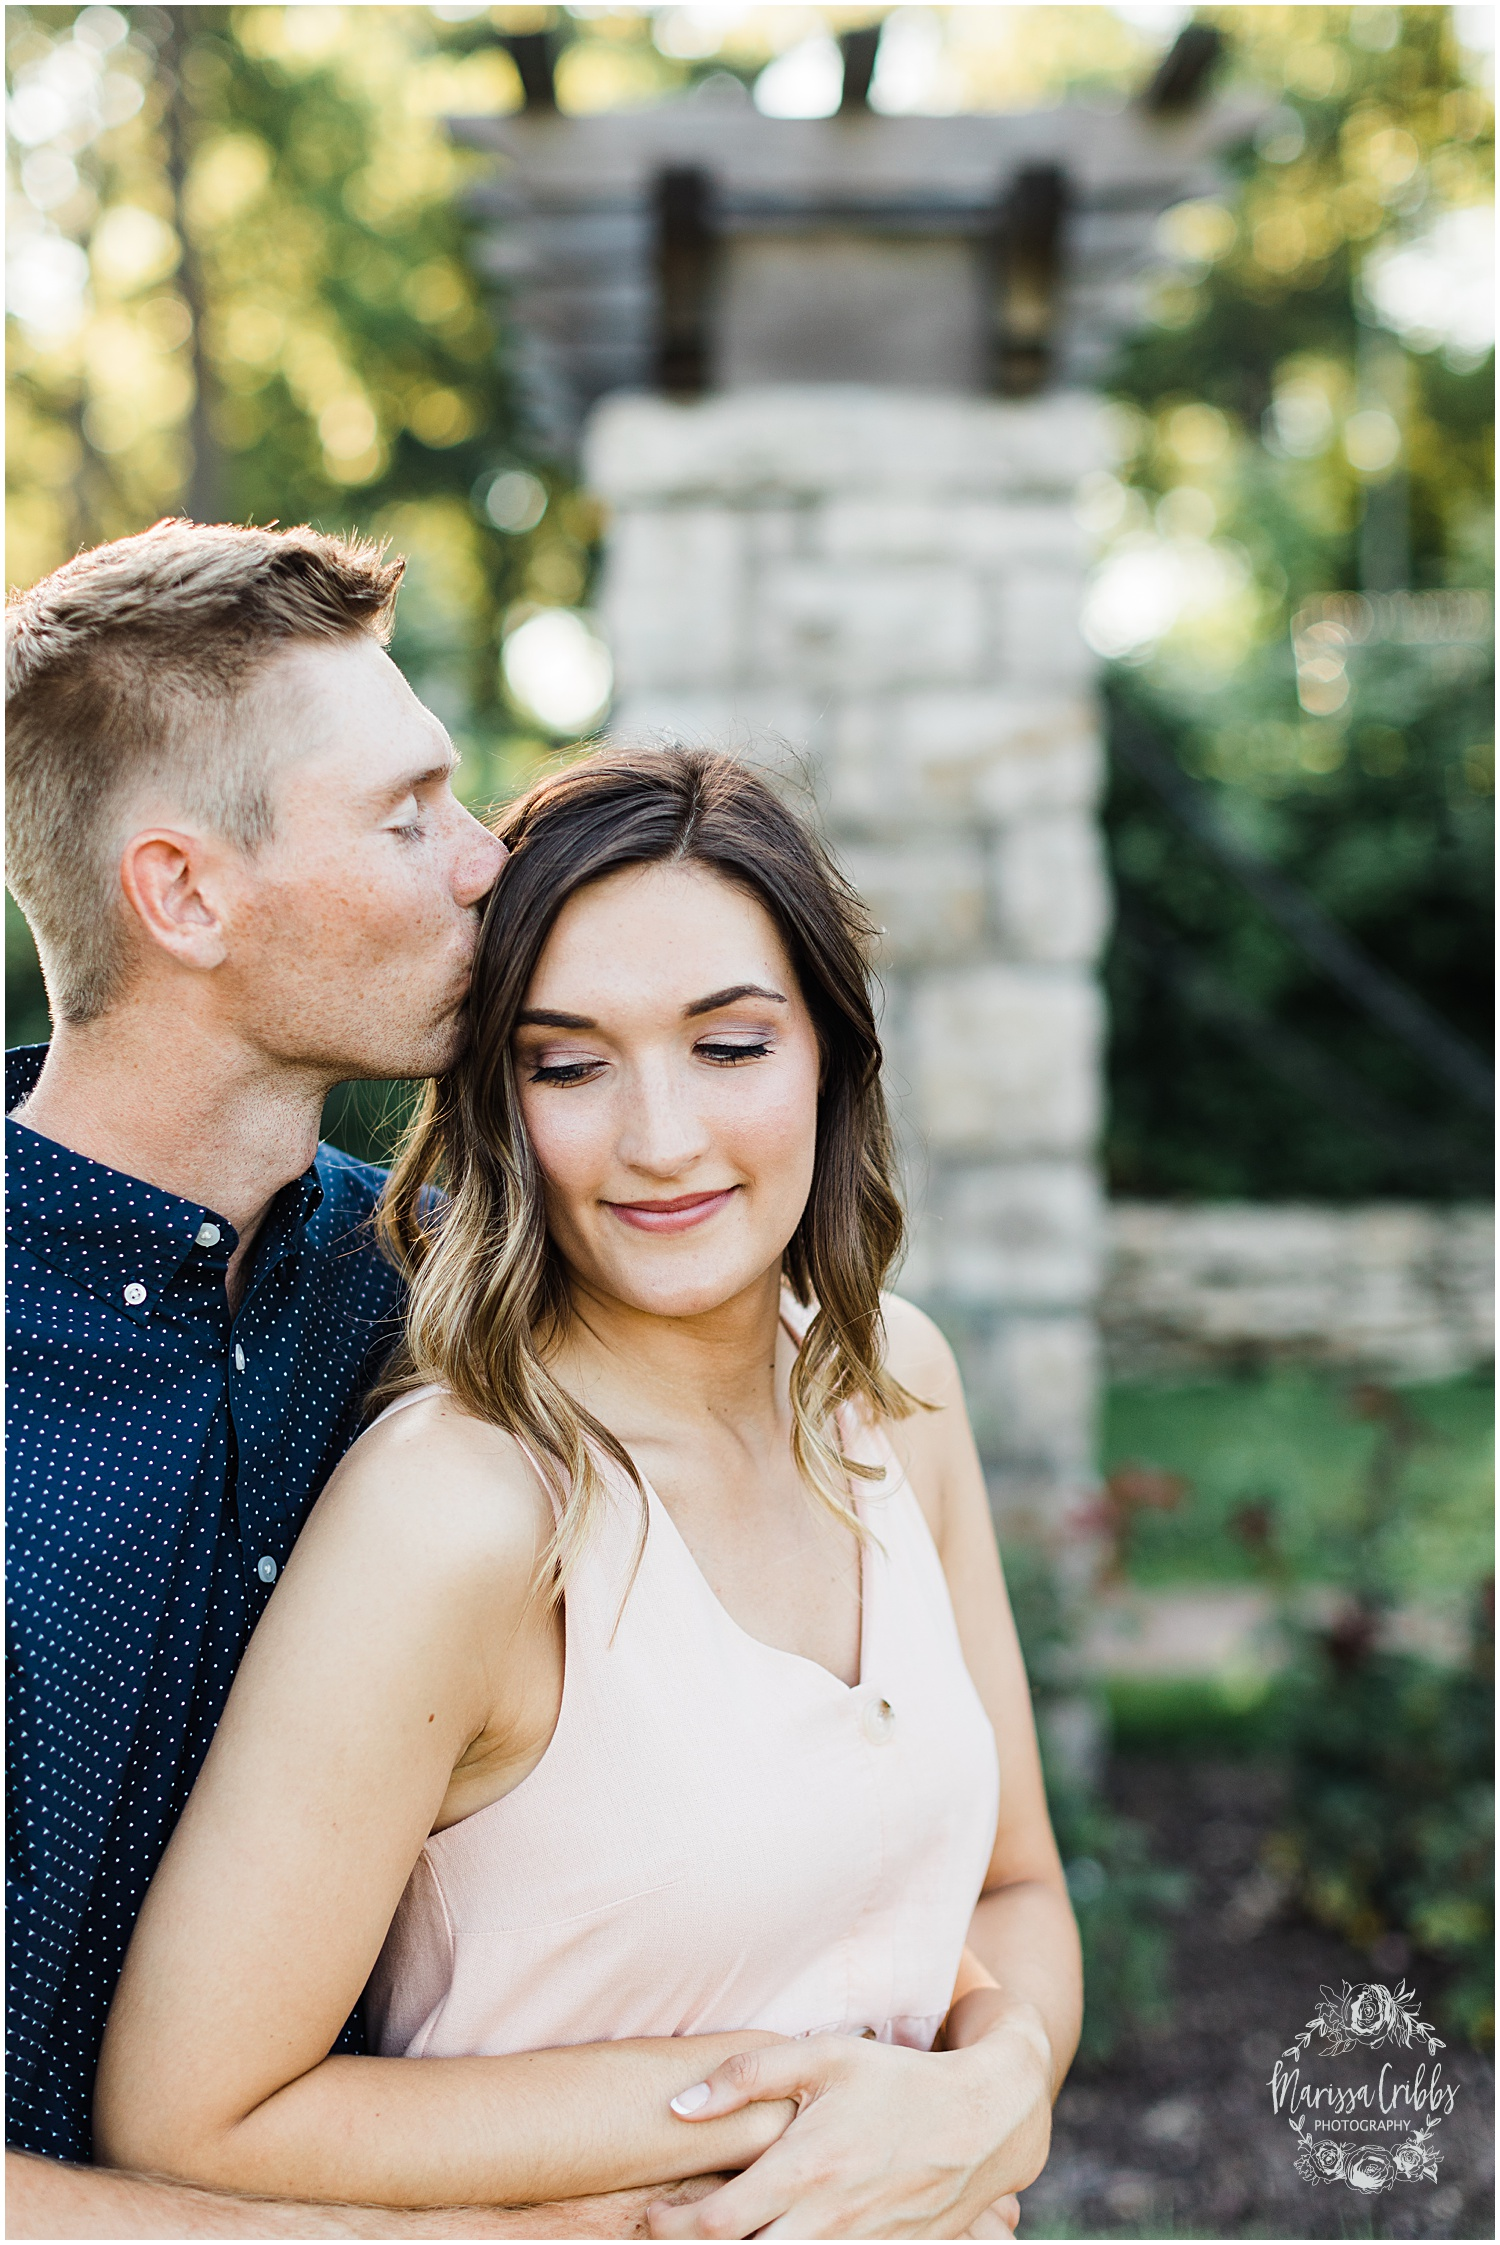 KELSEY & MICHAEL ENGAGEMENT BLOG | MARISSA CRIBBS PHOTOGRAPHY_8443.jpg